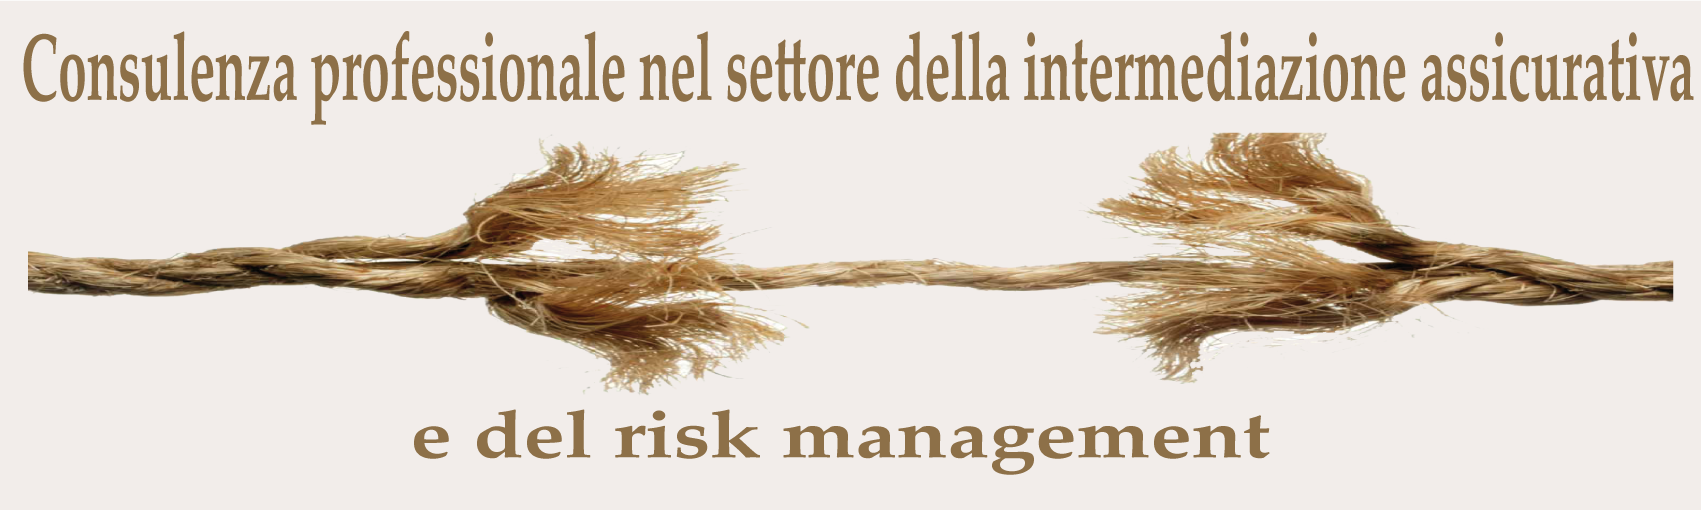 riskmanagement-corda